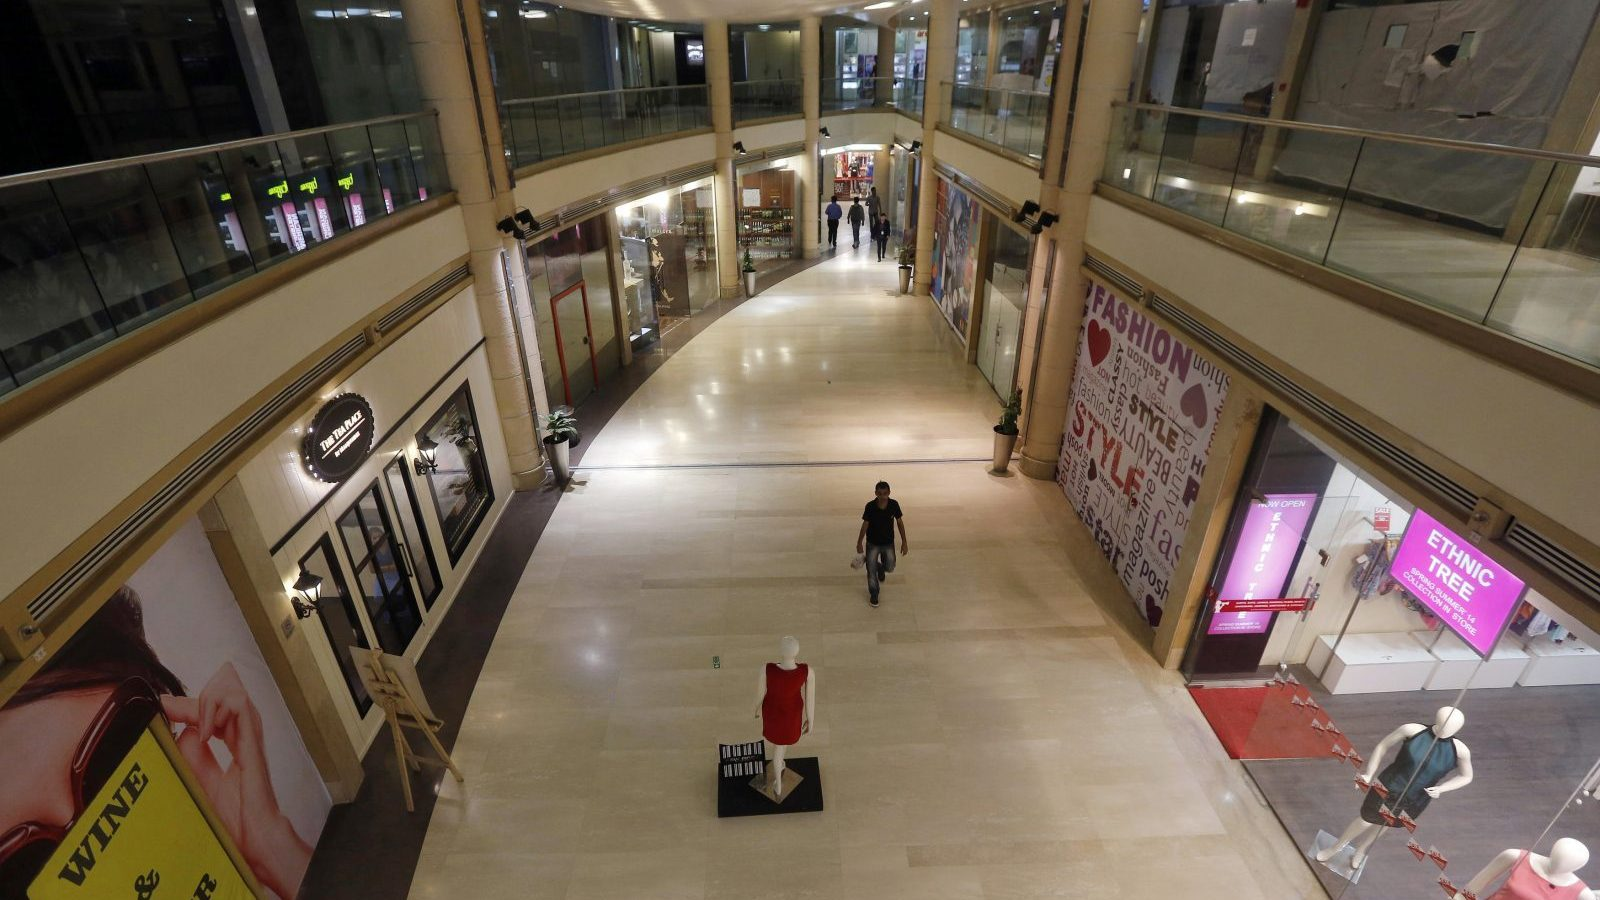 A man walks inside a MGF Metropolitan mall in New Delhi February 23, 2015. A severe shortage of attractive malls has made setting up shop in India easier said than done, crimping expansion plans for both foreign retailers such as Lacoste and domestic giants like department store chain Shoppers Stop. India's searing heat, heavy traffic and cluttered pavements make malls the most popular option for urban middle class consumers looking for a day out. But many centres - despite having been built in the last decade - are struggling to draw shoppers or retailers because of poor design or because they are difficult to manage. Picture taken February 23, 2015.    REUTERS/Adnan Abidi (INDIA - Tags: BUSINESS) - GM1EB2O051F01